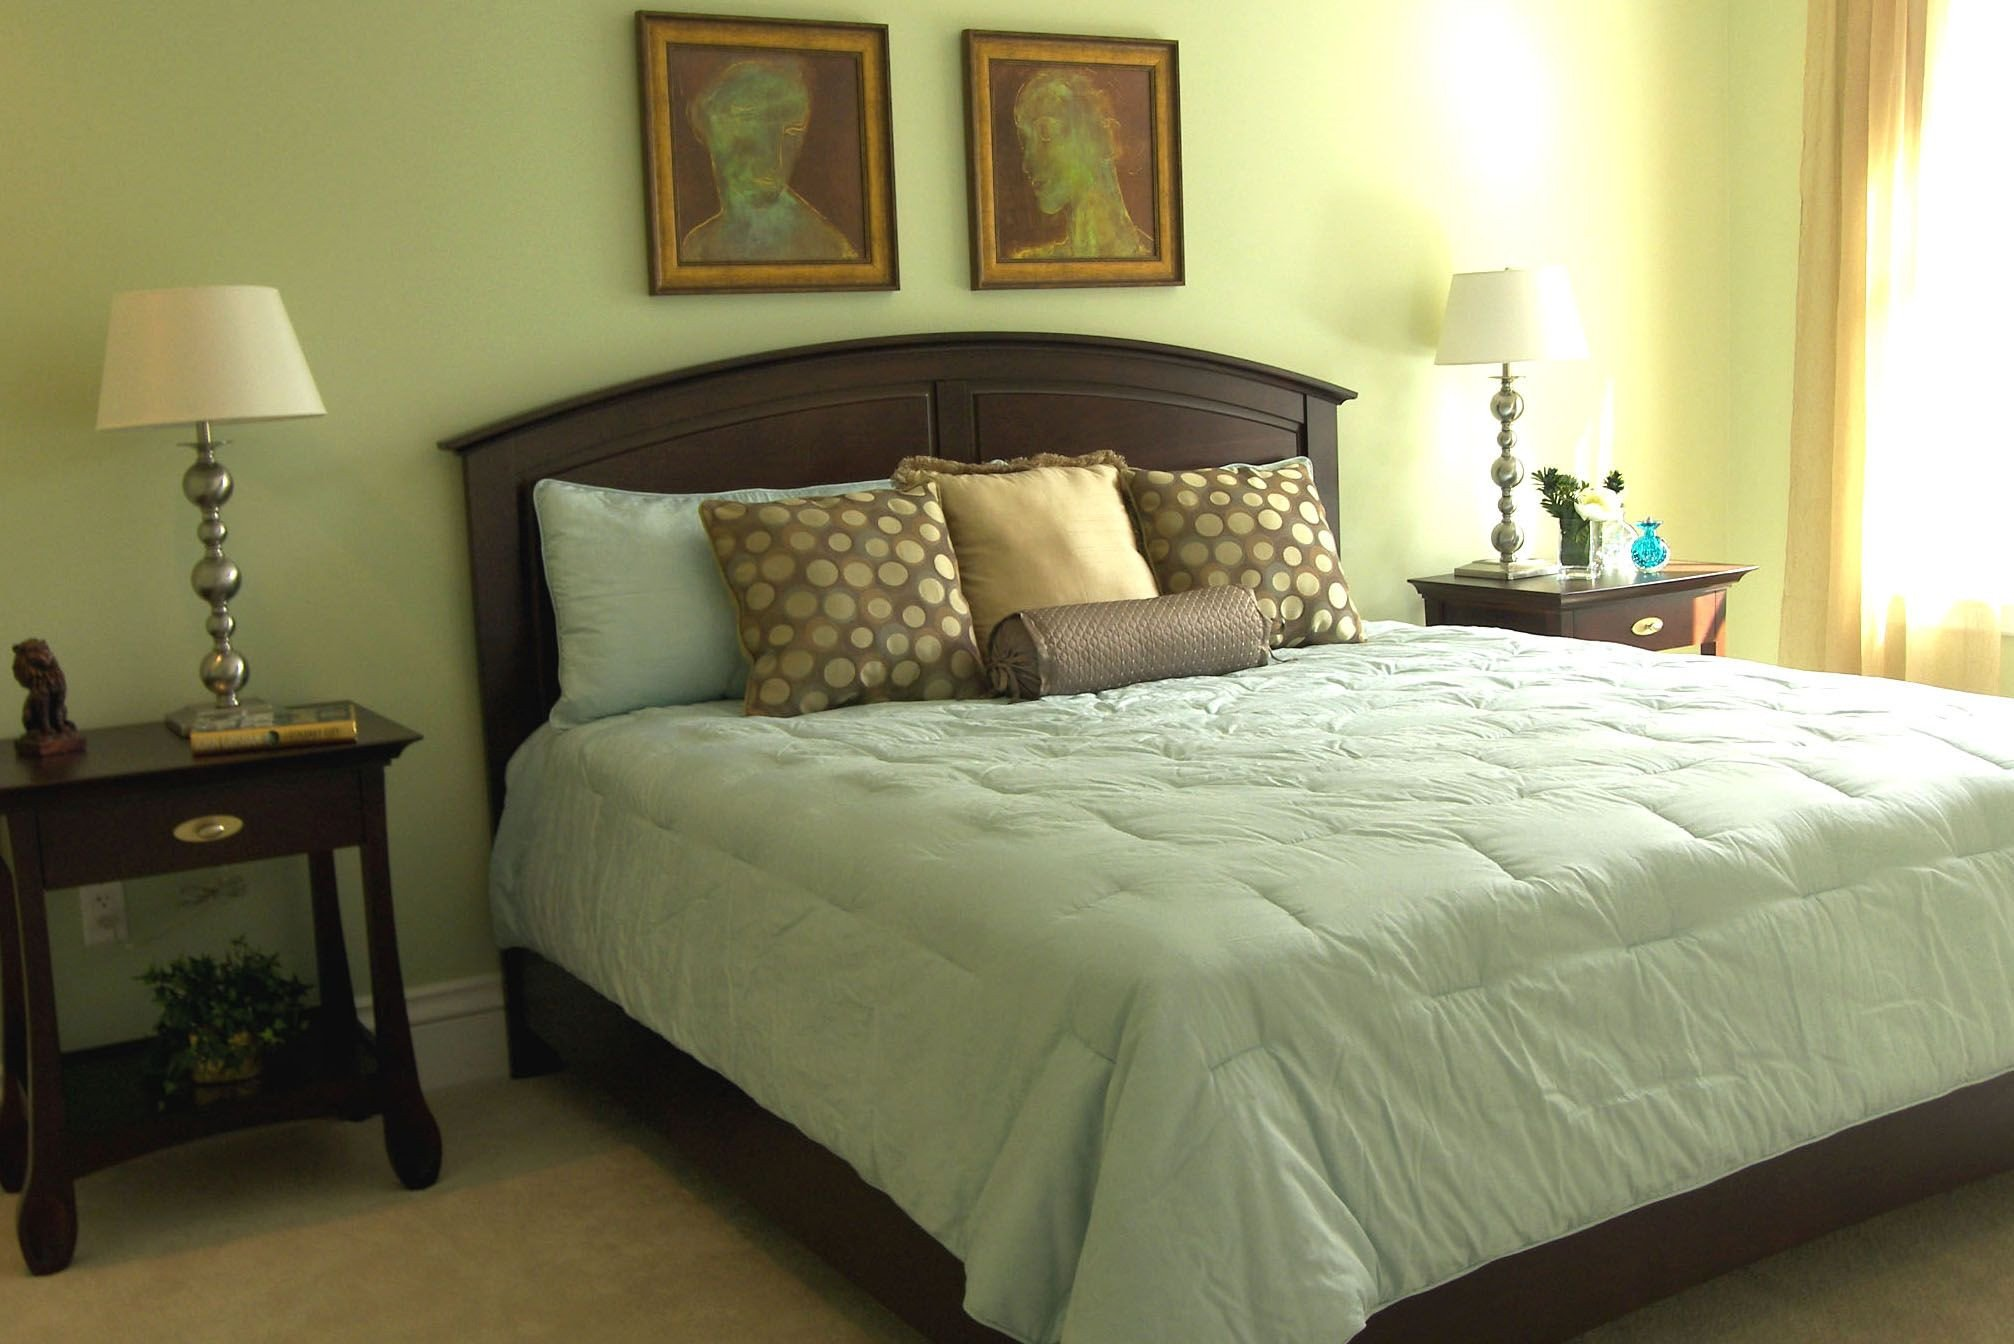 Bedroom Colors with Brown Furniture Luxury Brown Bedroom Green Bedding the Move Interiors